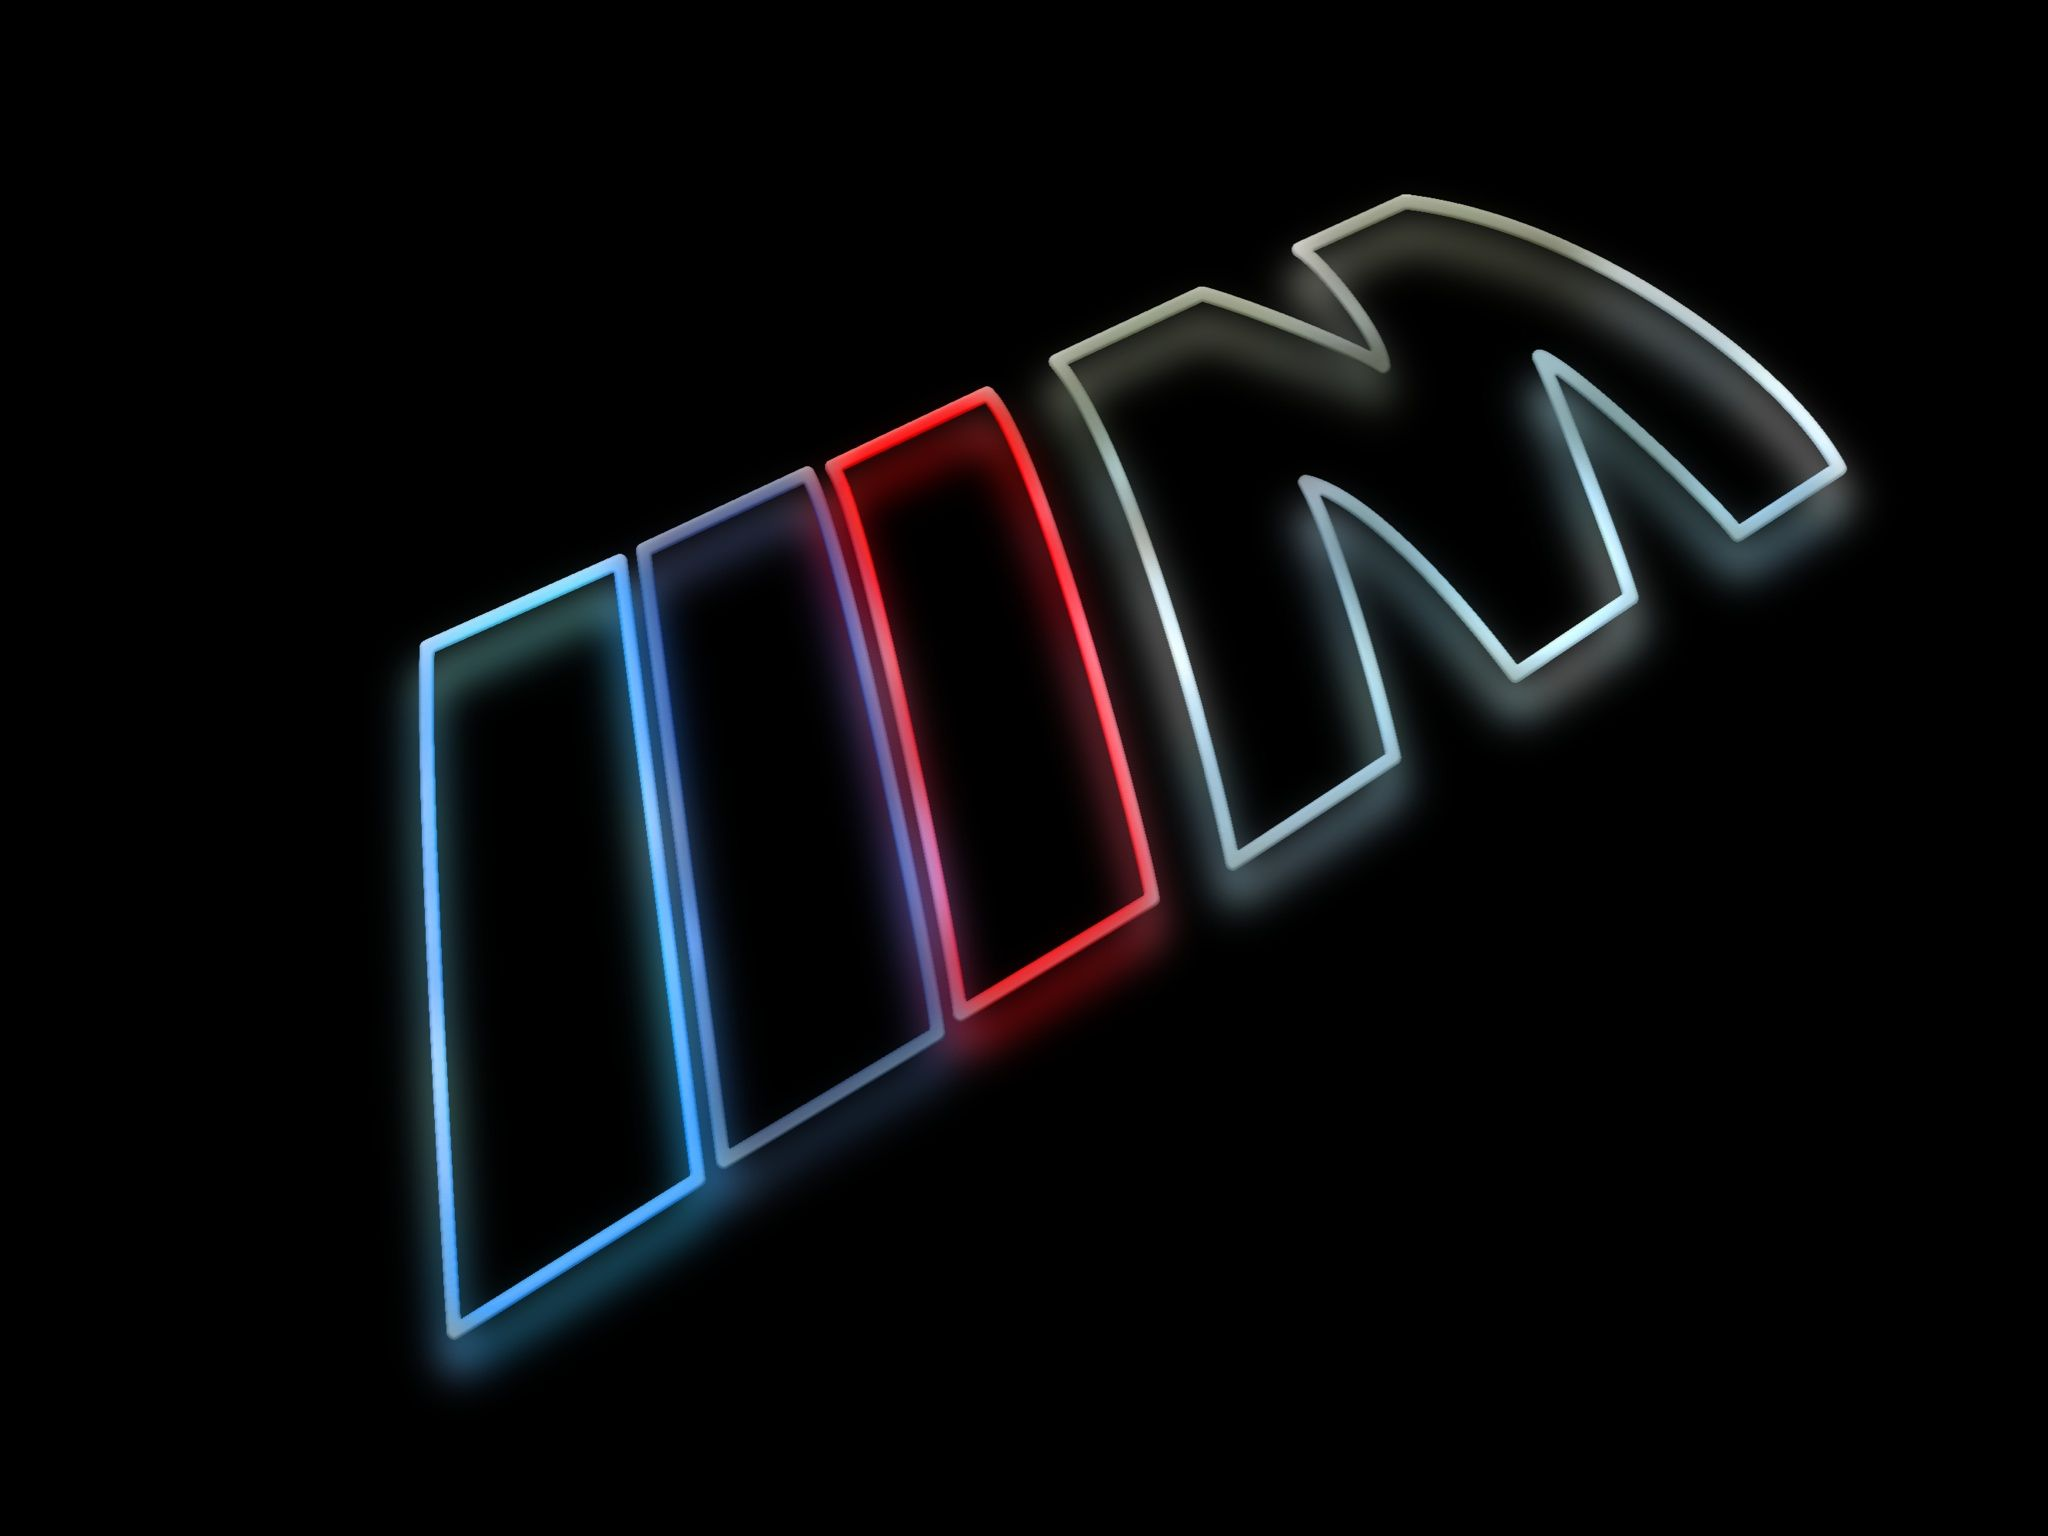 Bmw M Logo As A Colorful Silhouette Rendering With A Glow Against A